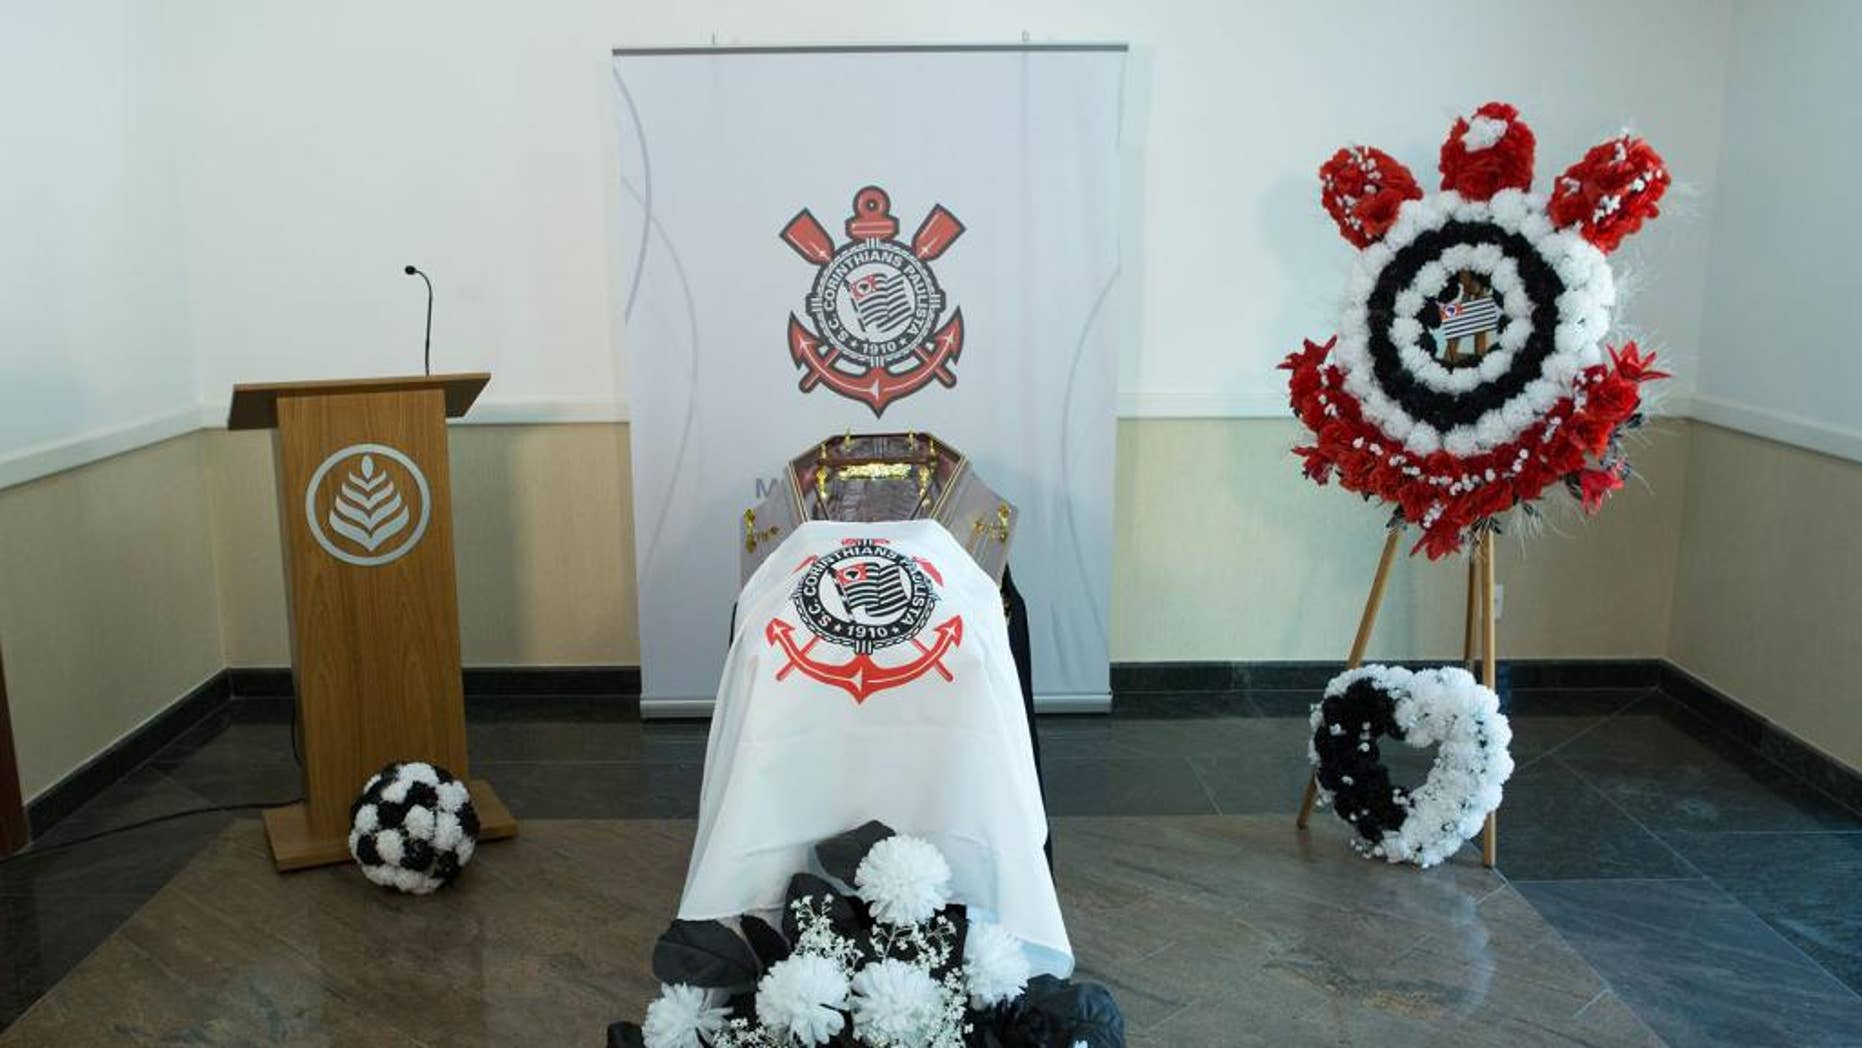 """This undated photo released by the Corinthians soccer team shows an empty casket draped with the team's flag in Sao Paulo, Brazil. Corinthians says it's building its own cemetery, complete with a mock football field and VIP tribunes where some of the team's greatest players will be offered burial spaces. The """"Corinthians Forever"""" cemetery is expected to open late in 2015, but fans can already start booking one of the 70,000 burial places available. (AP Photo/Ivo Duran, Corinthians)"""